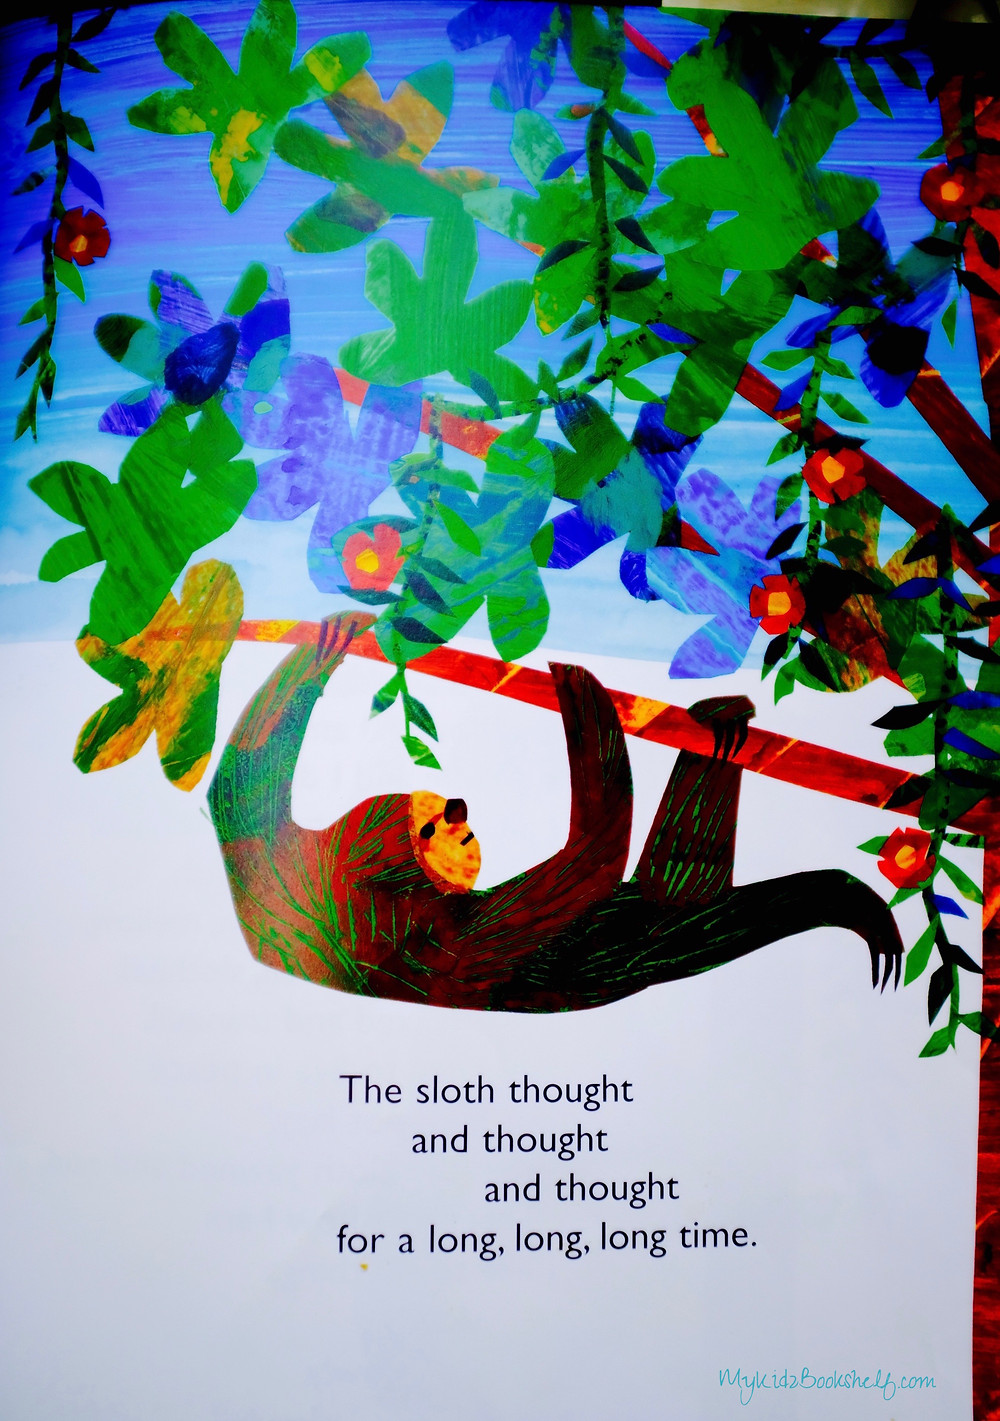 art-for-the-picture-book-slowly-slowly-slowly-said-the-sloth-by-Eric-Carle